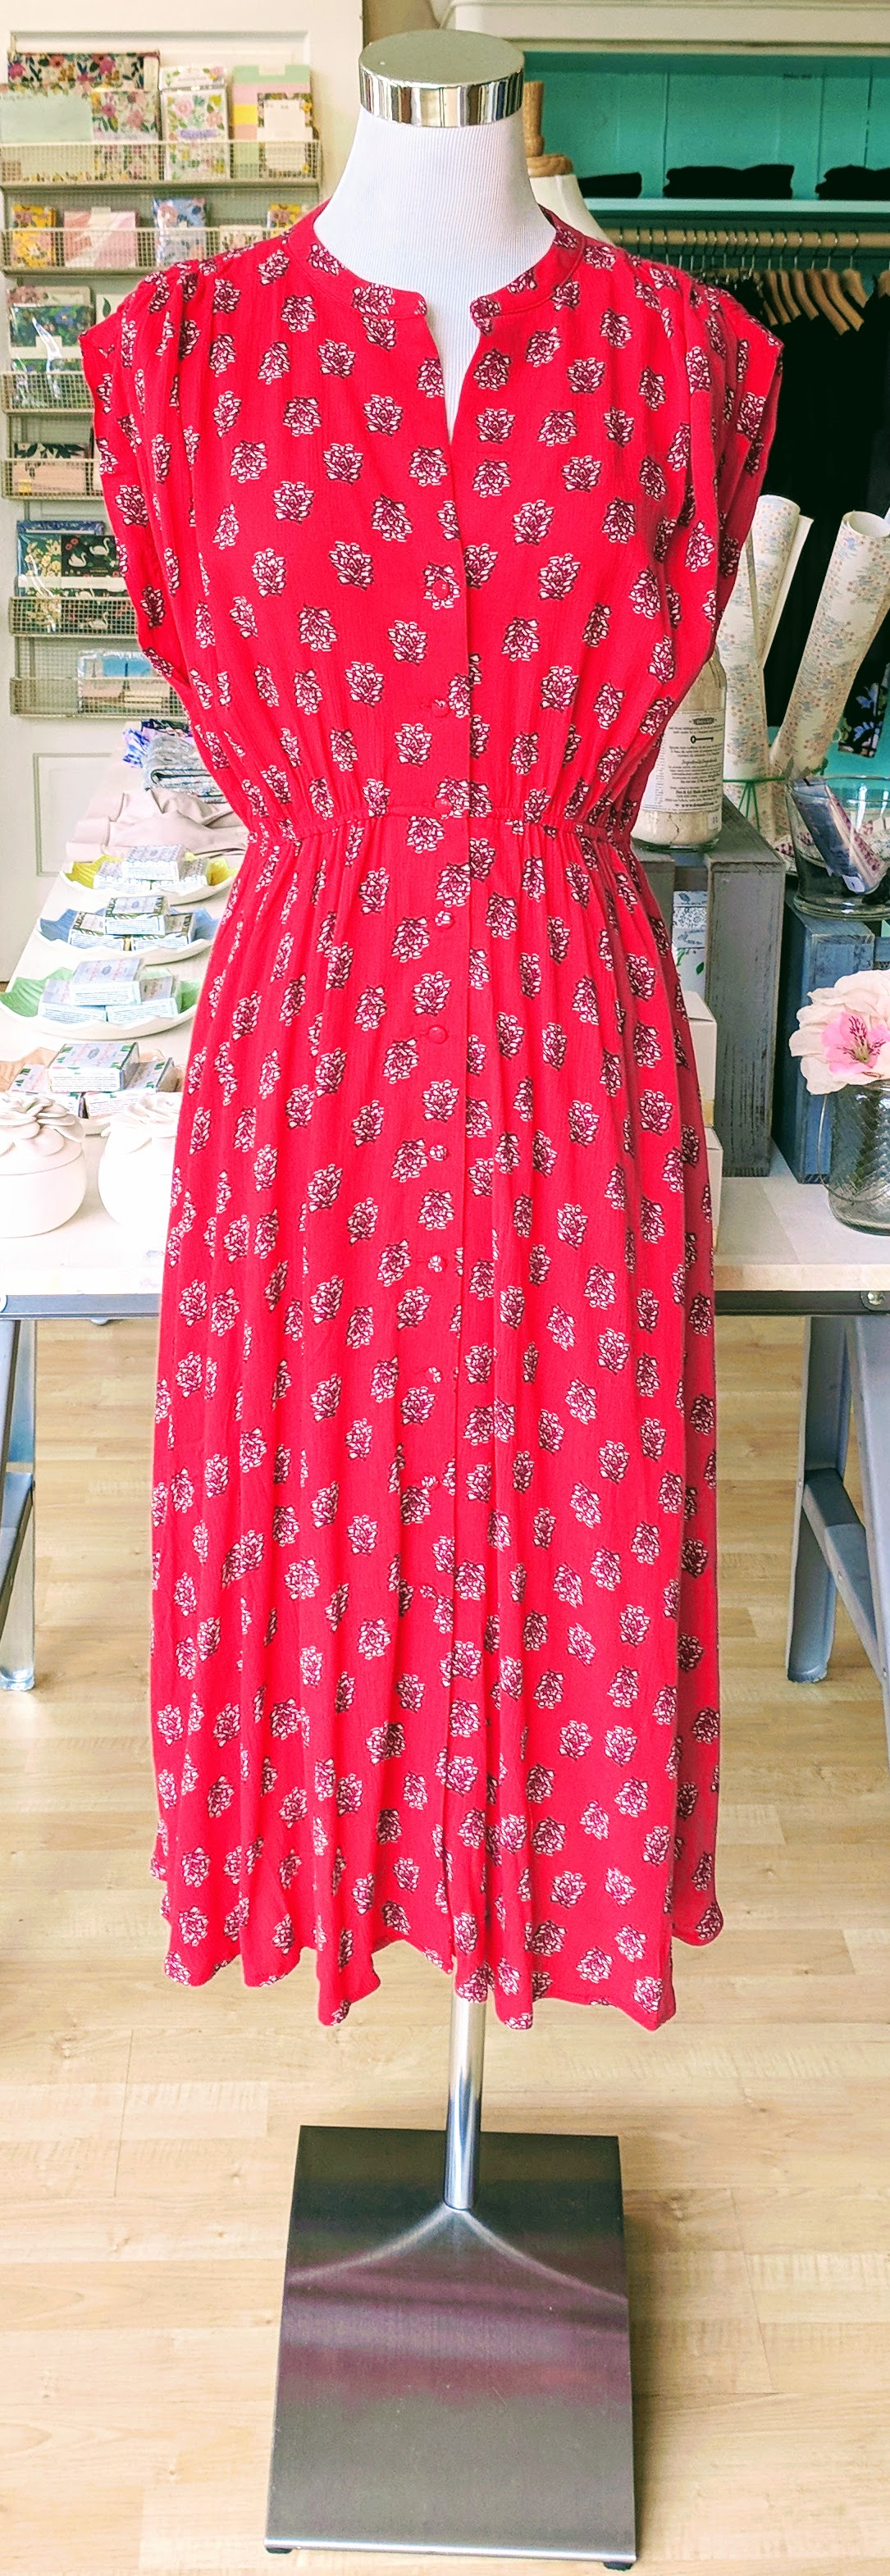 Coral sleeveless midi dress with button detail on front.